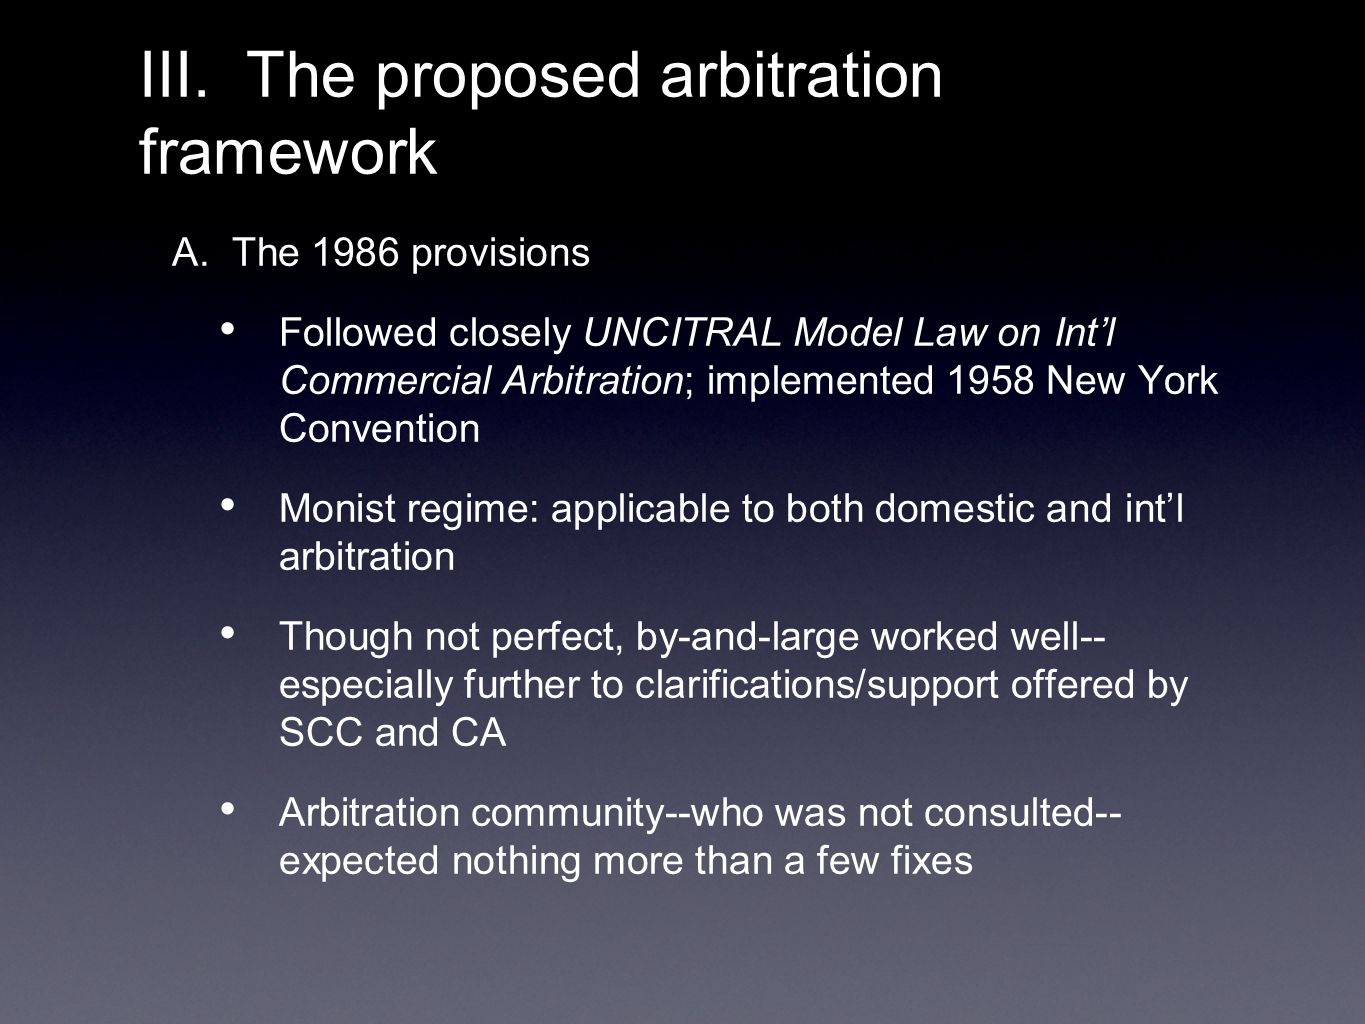 A. The 1986 provisions Followed closely UNCITRAL Model Law on Int'l Commercial Arbitration; implemented 1958 New York Convention Monist regime: applic